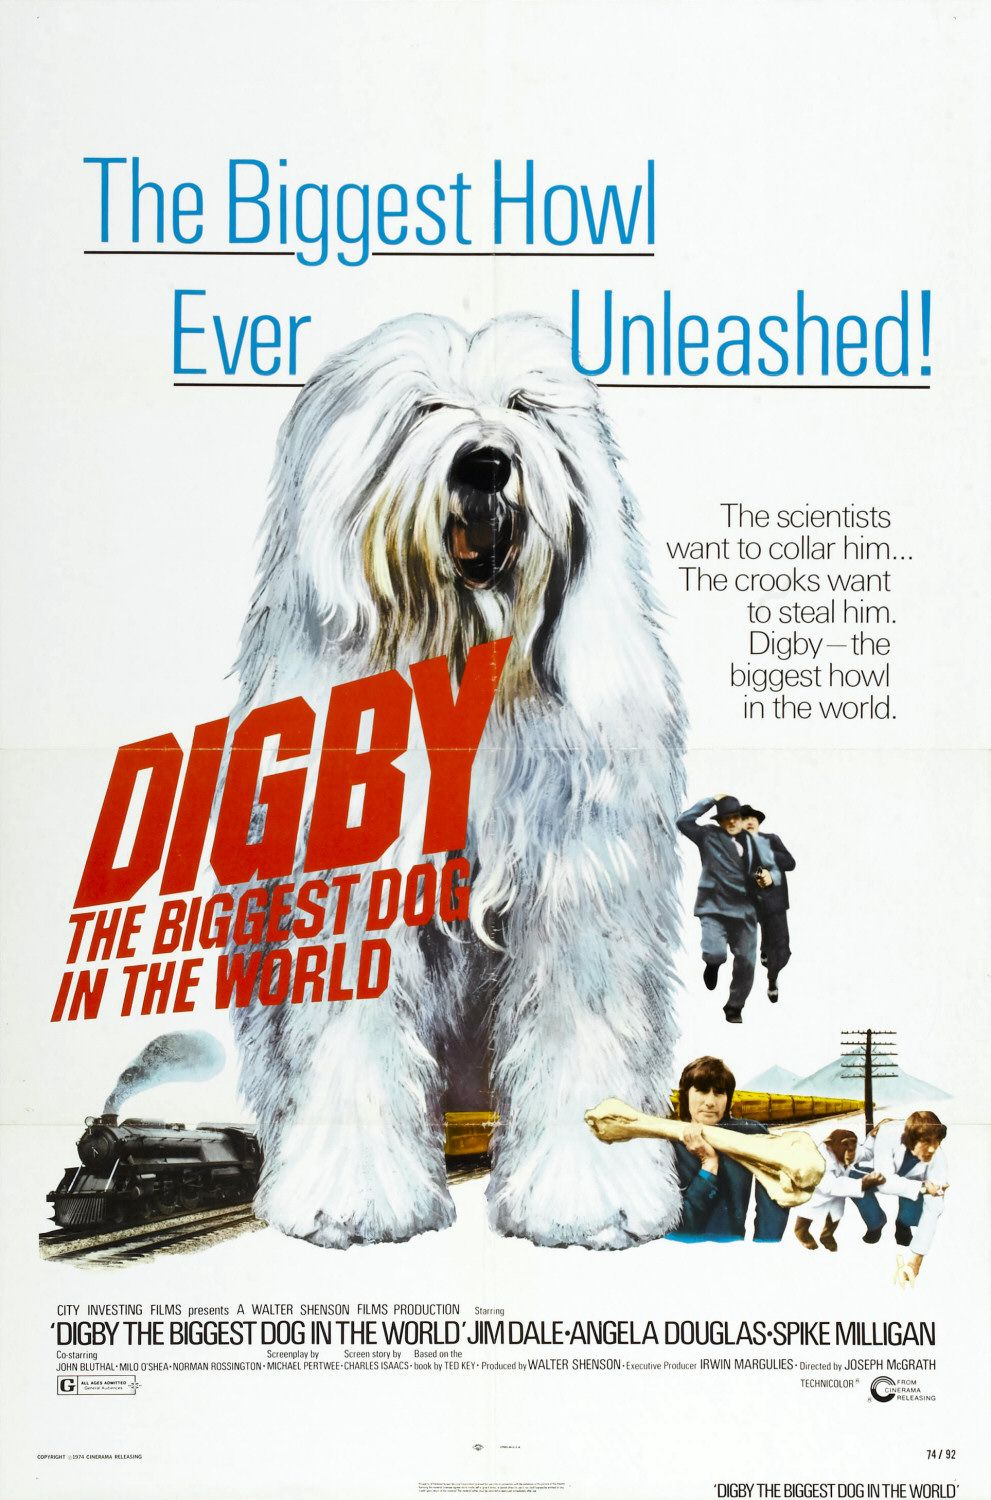 digby_the_biggest_dog_in_the_world_poster_1973_01.jpg